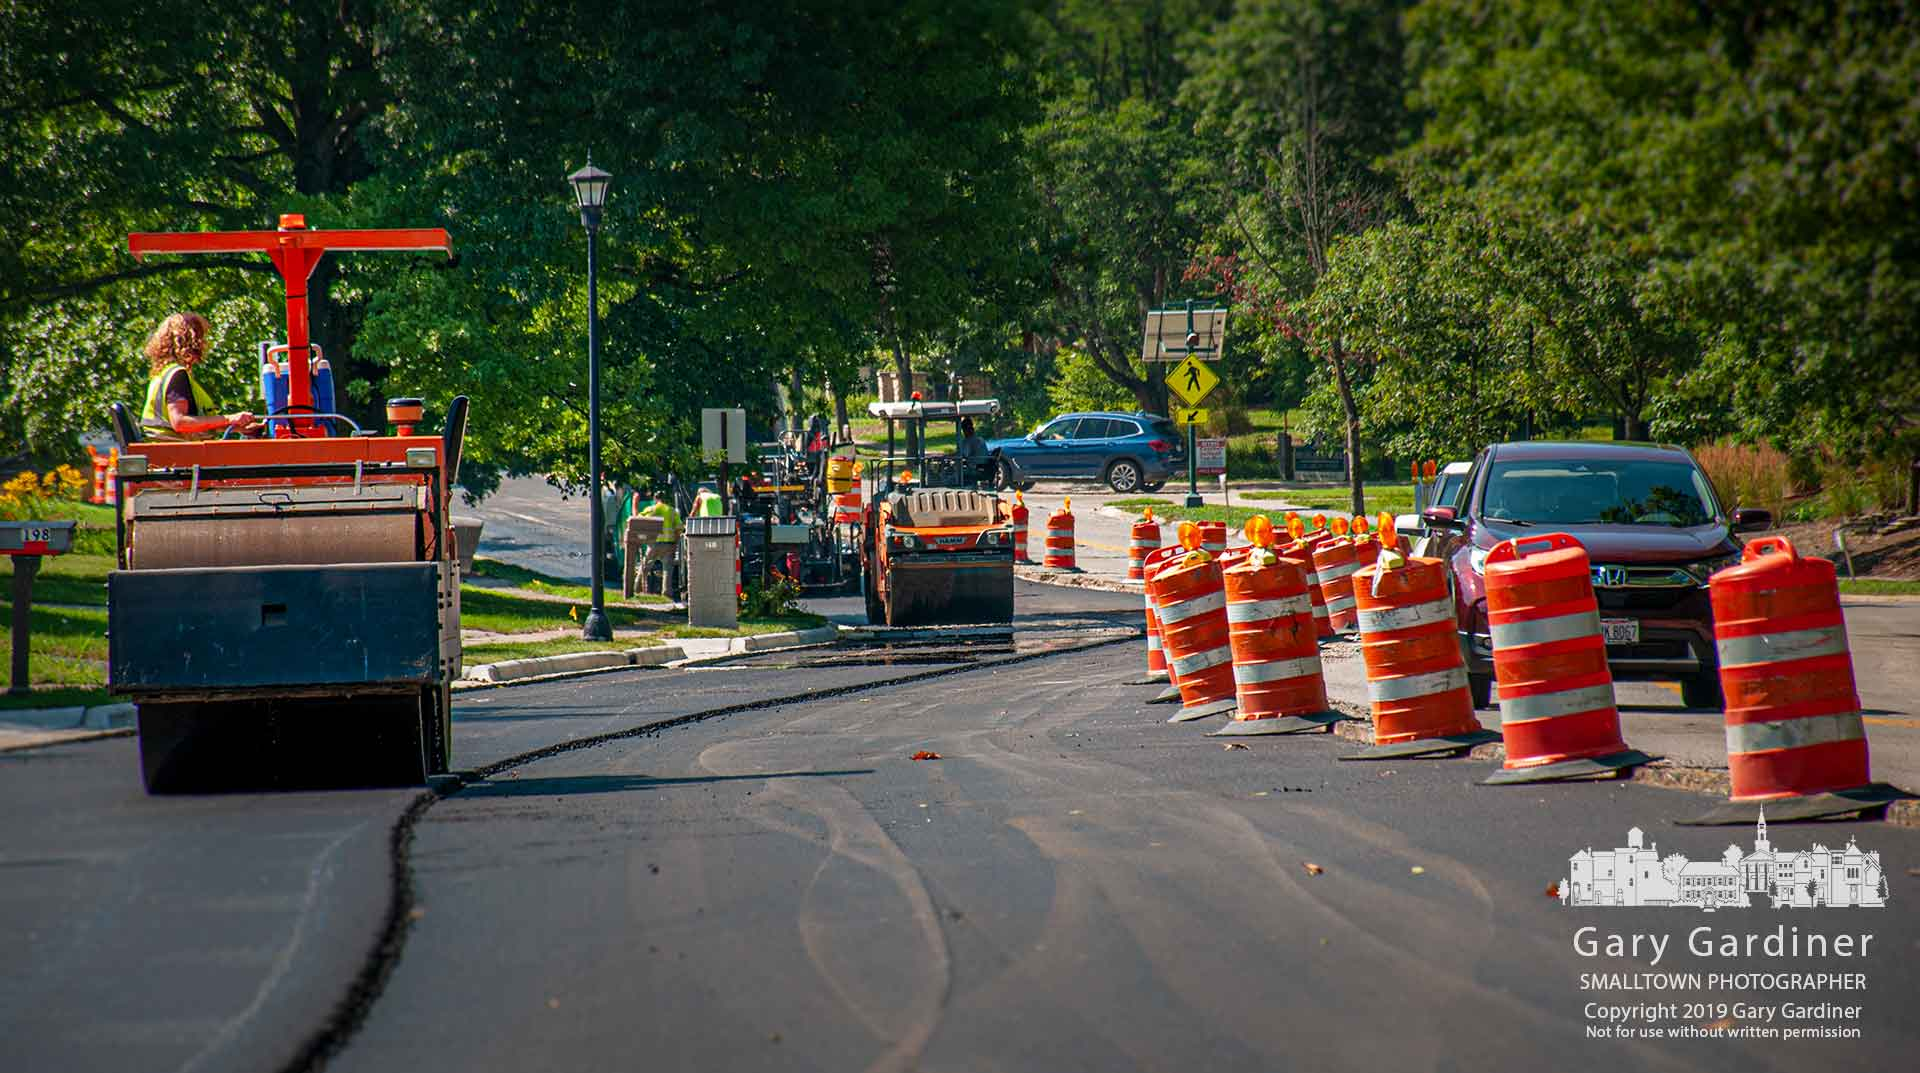 A steamroller compacts fresh asphalt laid on the end of the northbound lanes of Spring Road as the project prepares to switch traffic to the completed section and begin rebuilding the southbound lanes on Monday. My Final Photo for July 20, 2019.